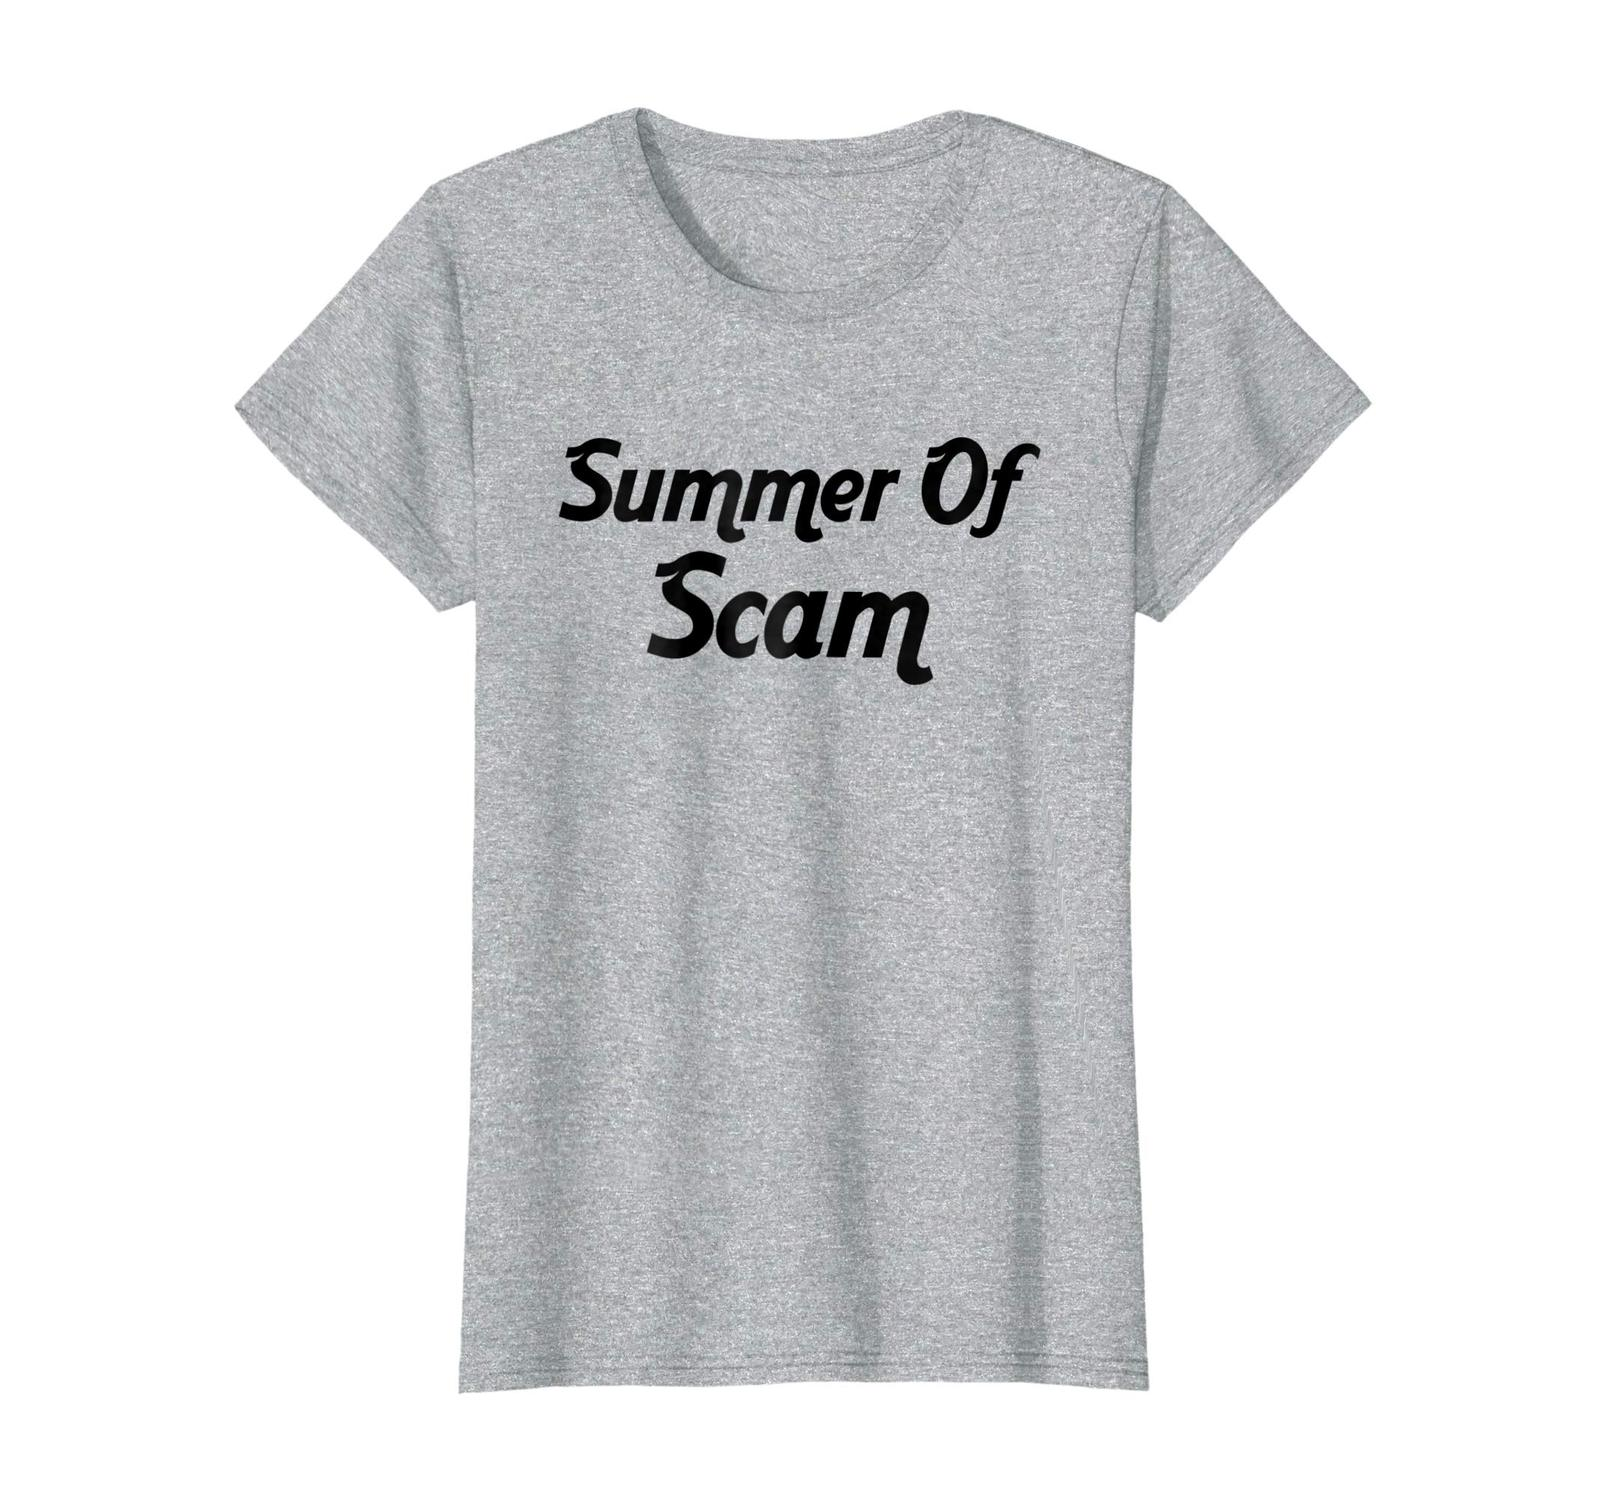 Brother Shirts - Summer Of Scam shirt Funny Gifts Wowen